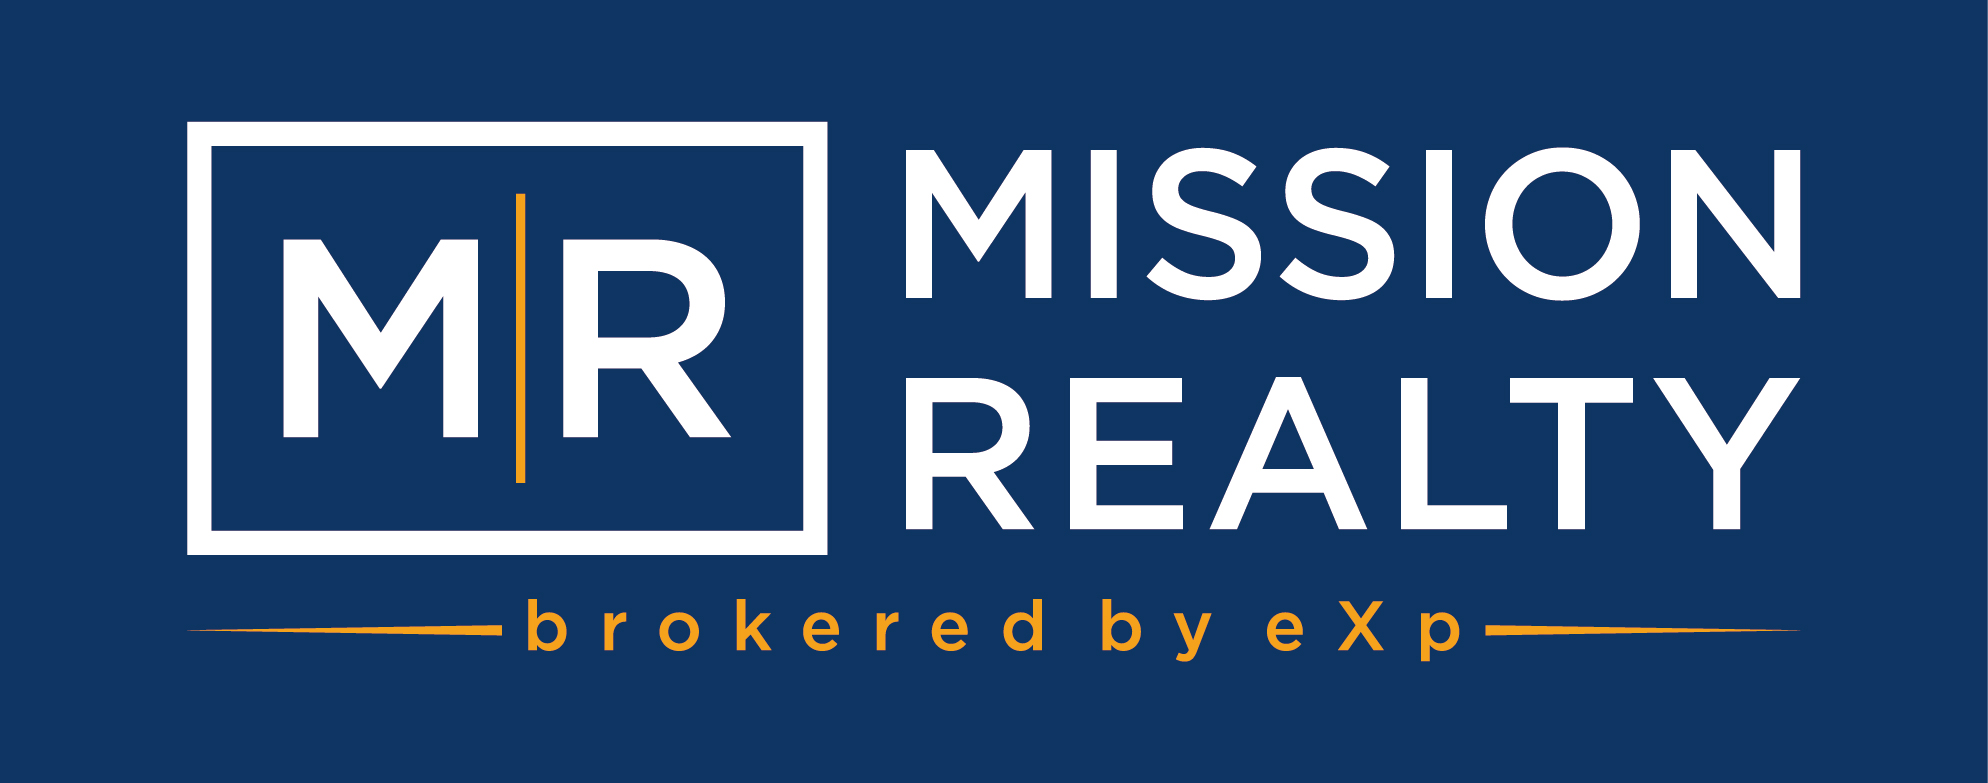 Mission Realty logo